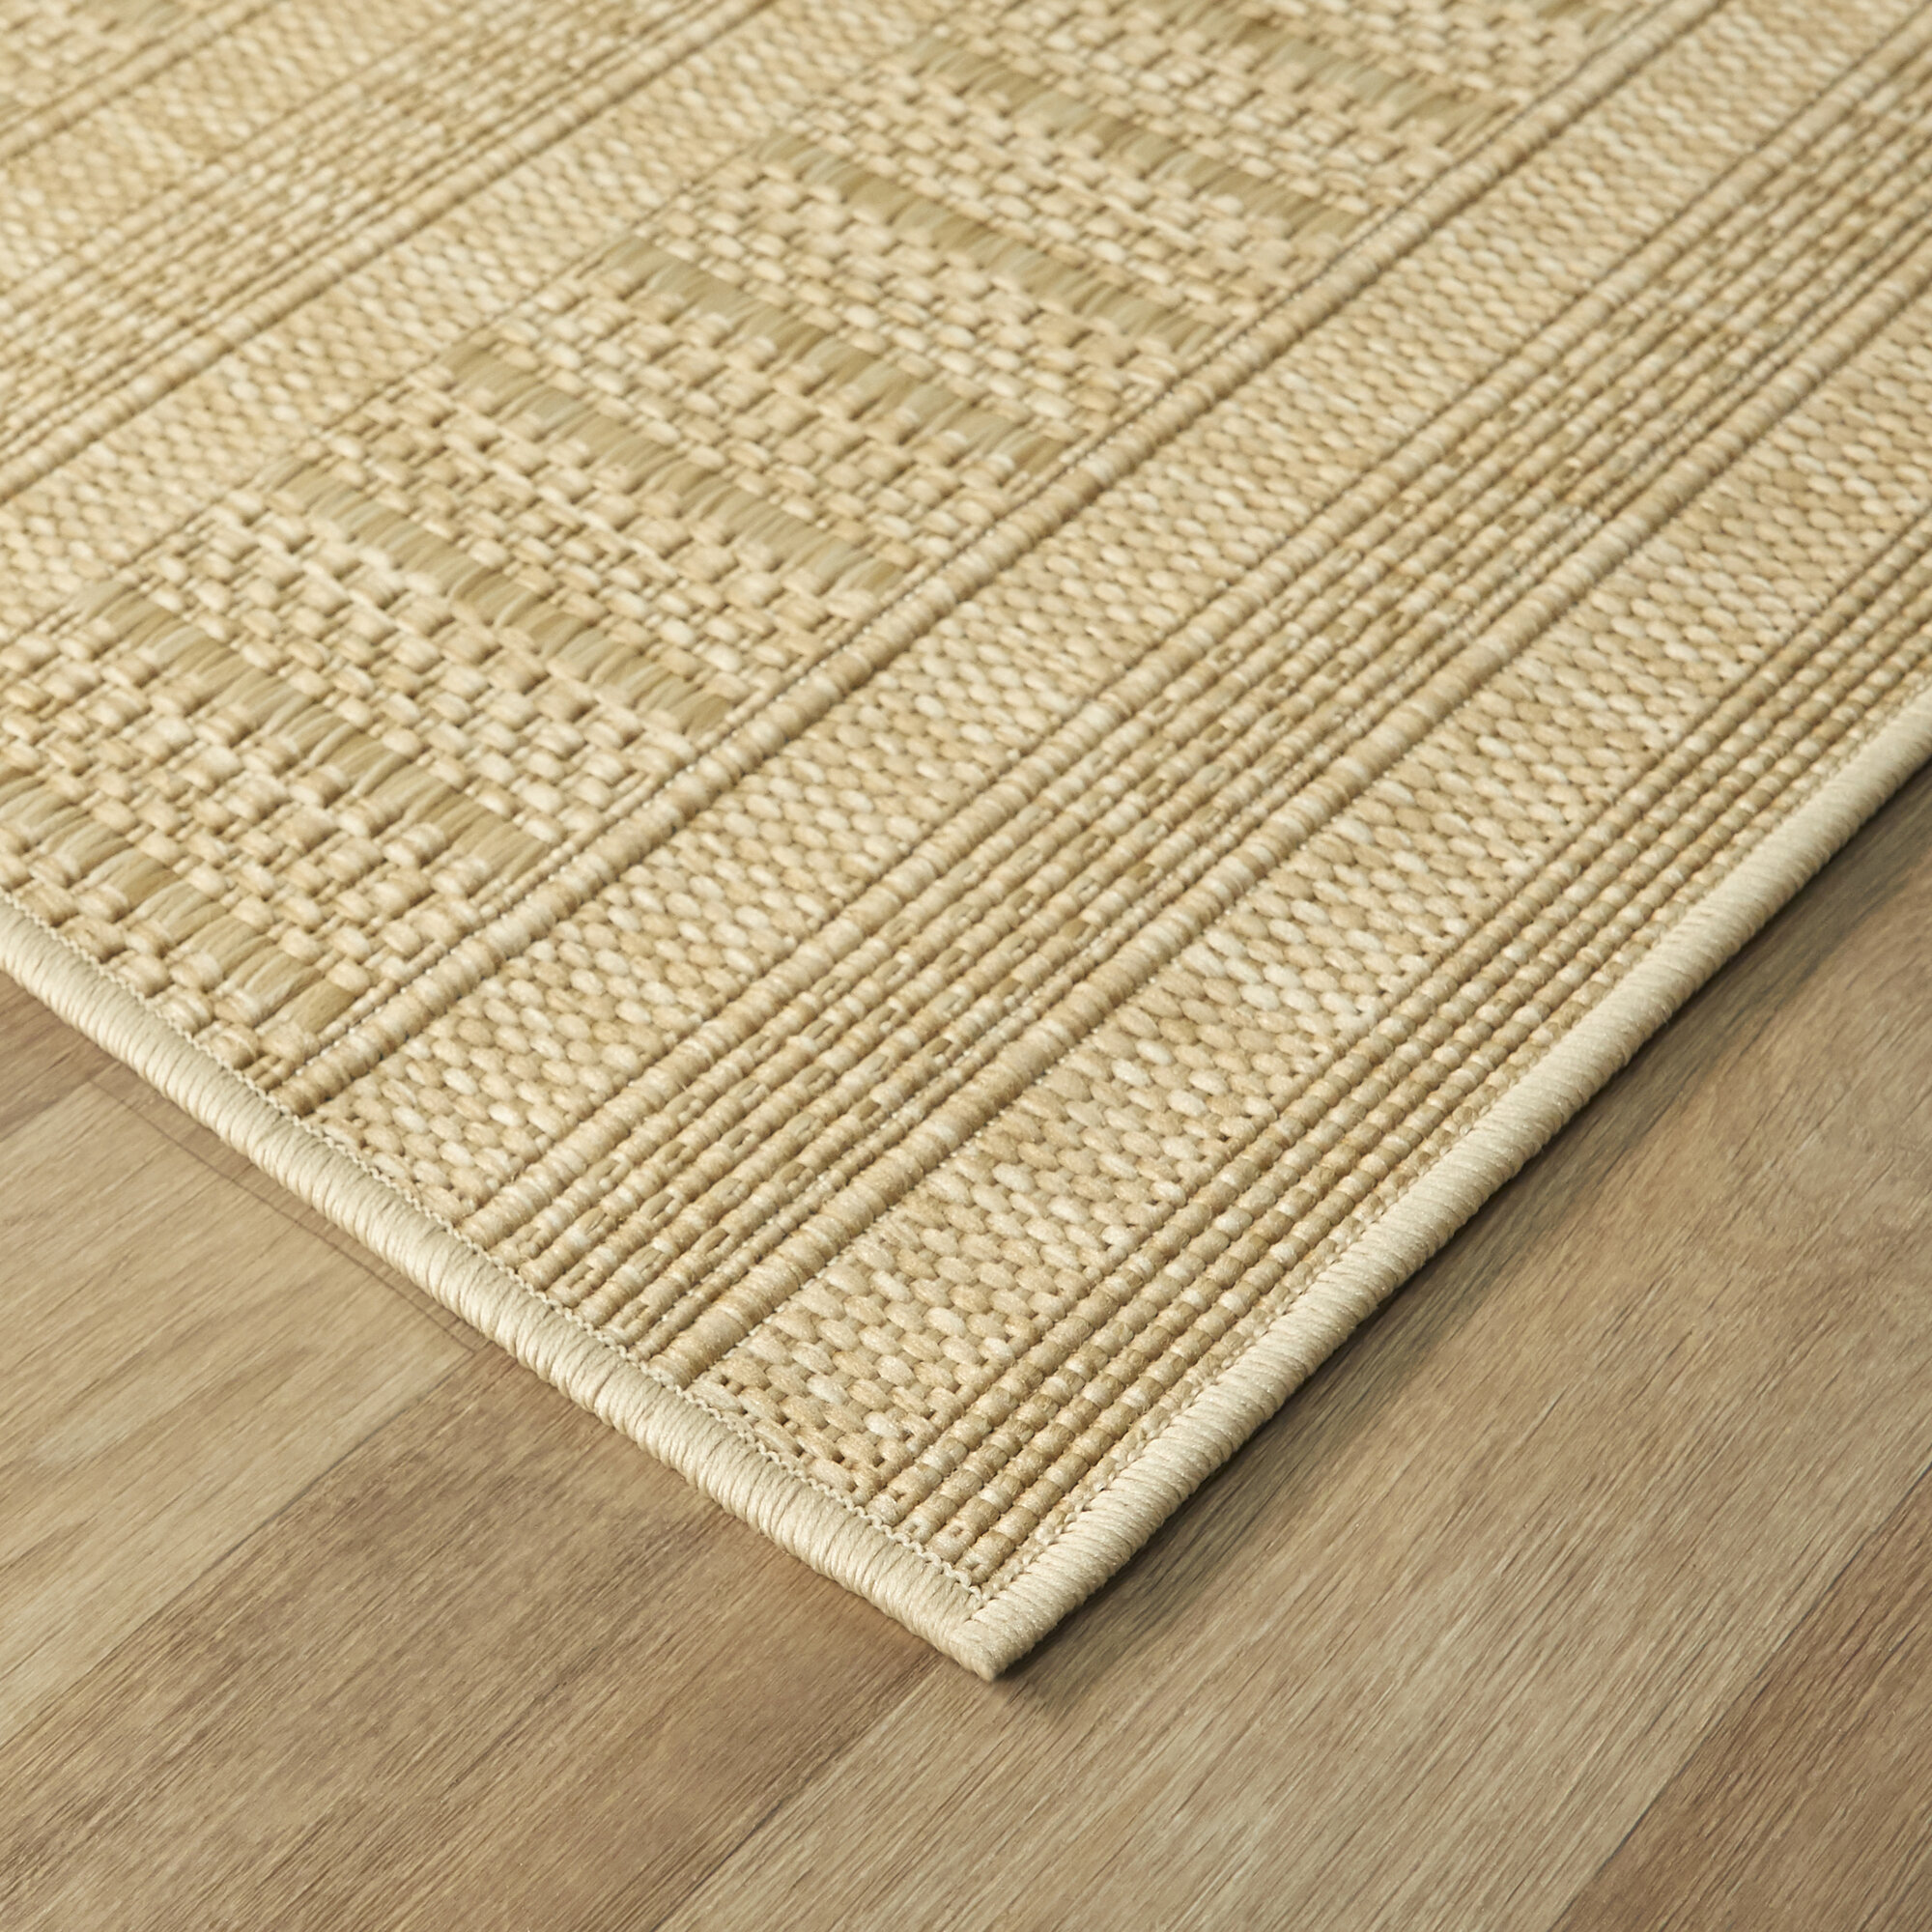 Farmhouse Rustic Striped Runner Rugs Birch Lane